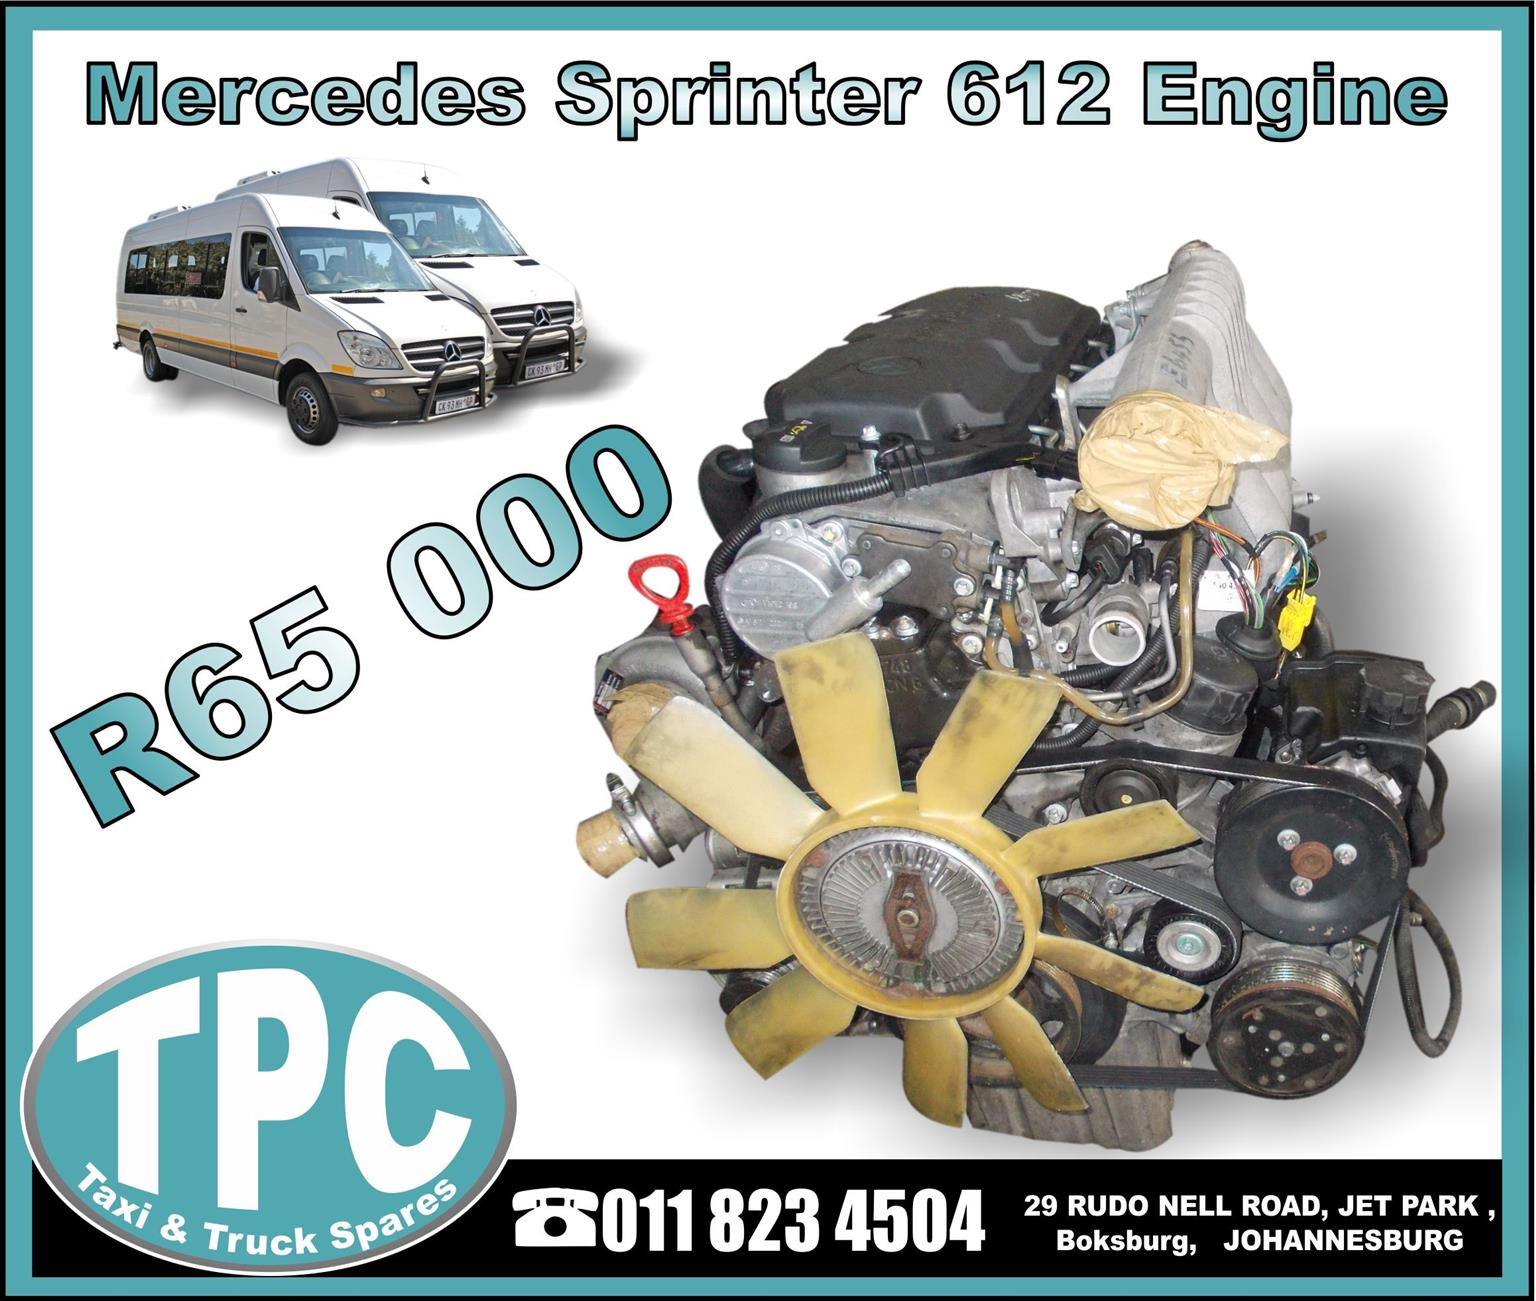 Mercedes Sprinter 612 Engine - USED - New And Used Replacement Parts.